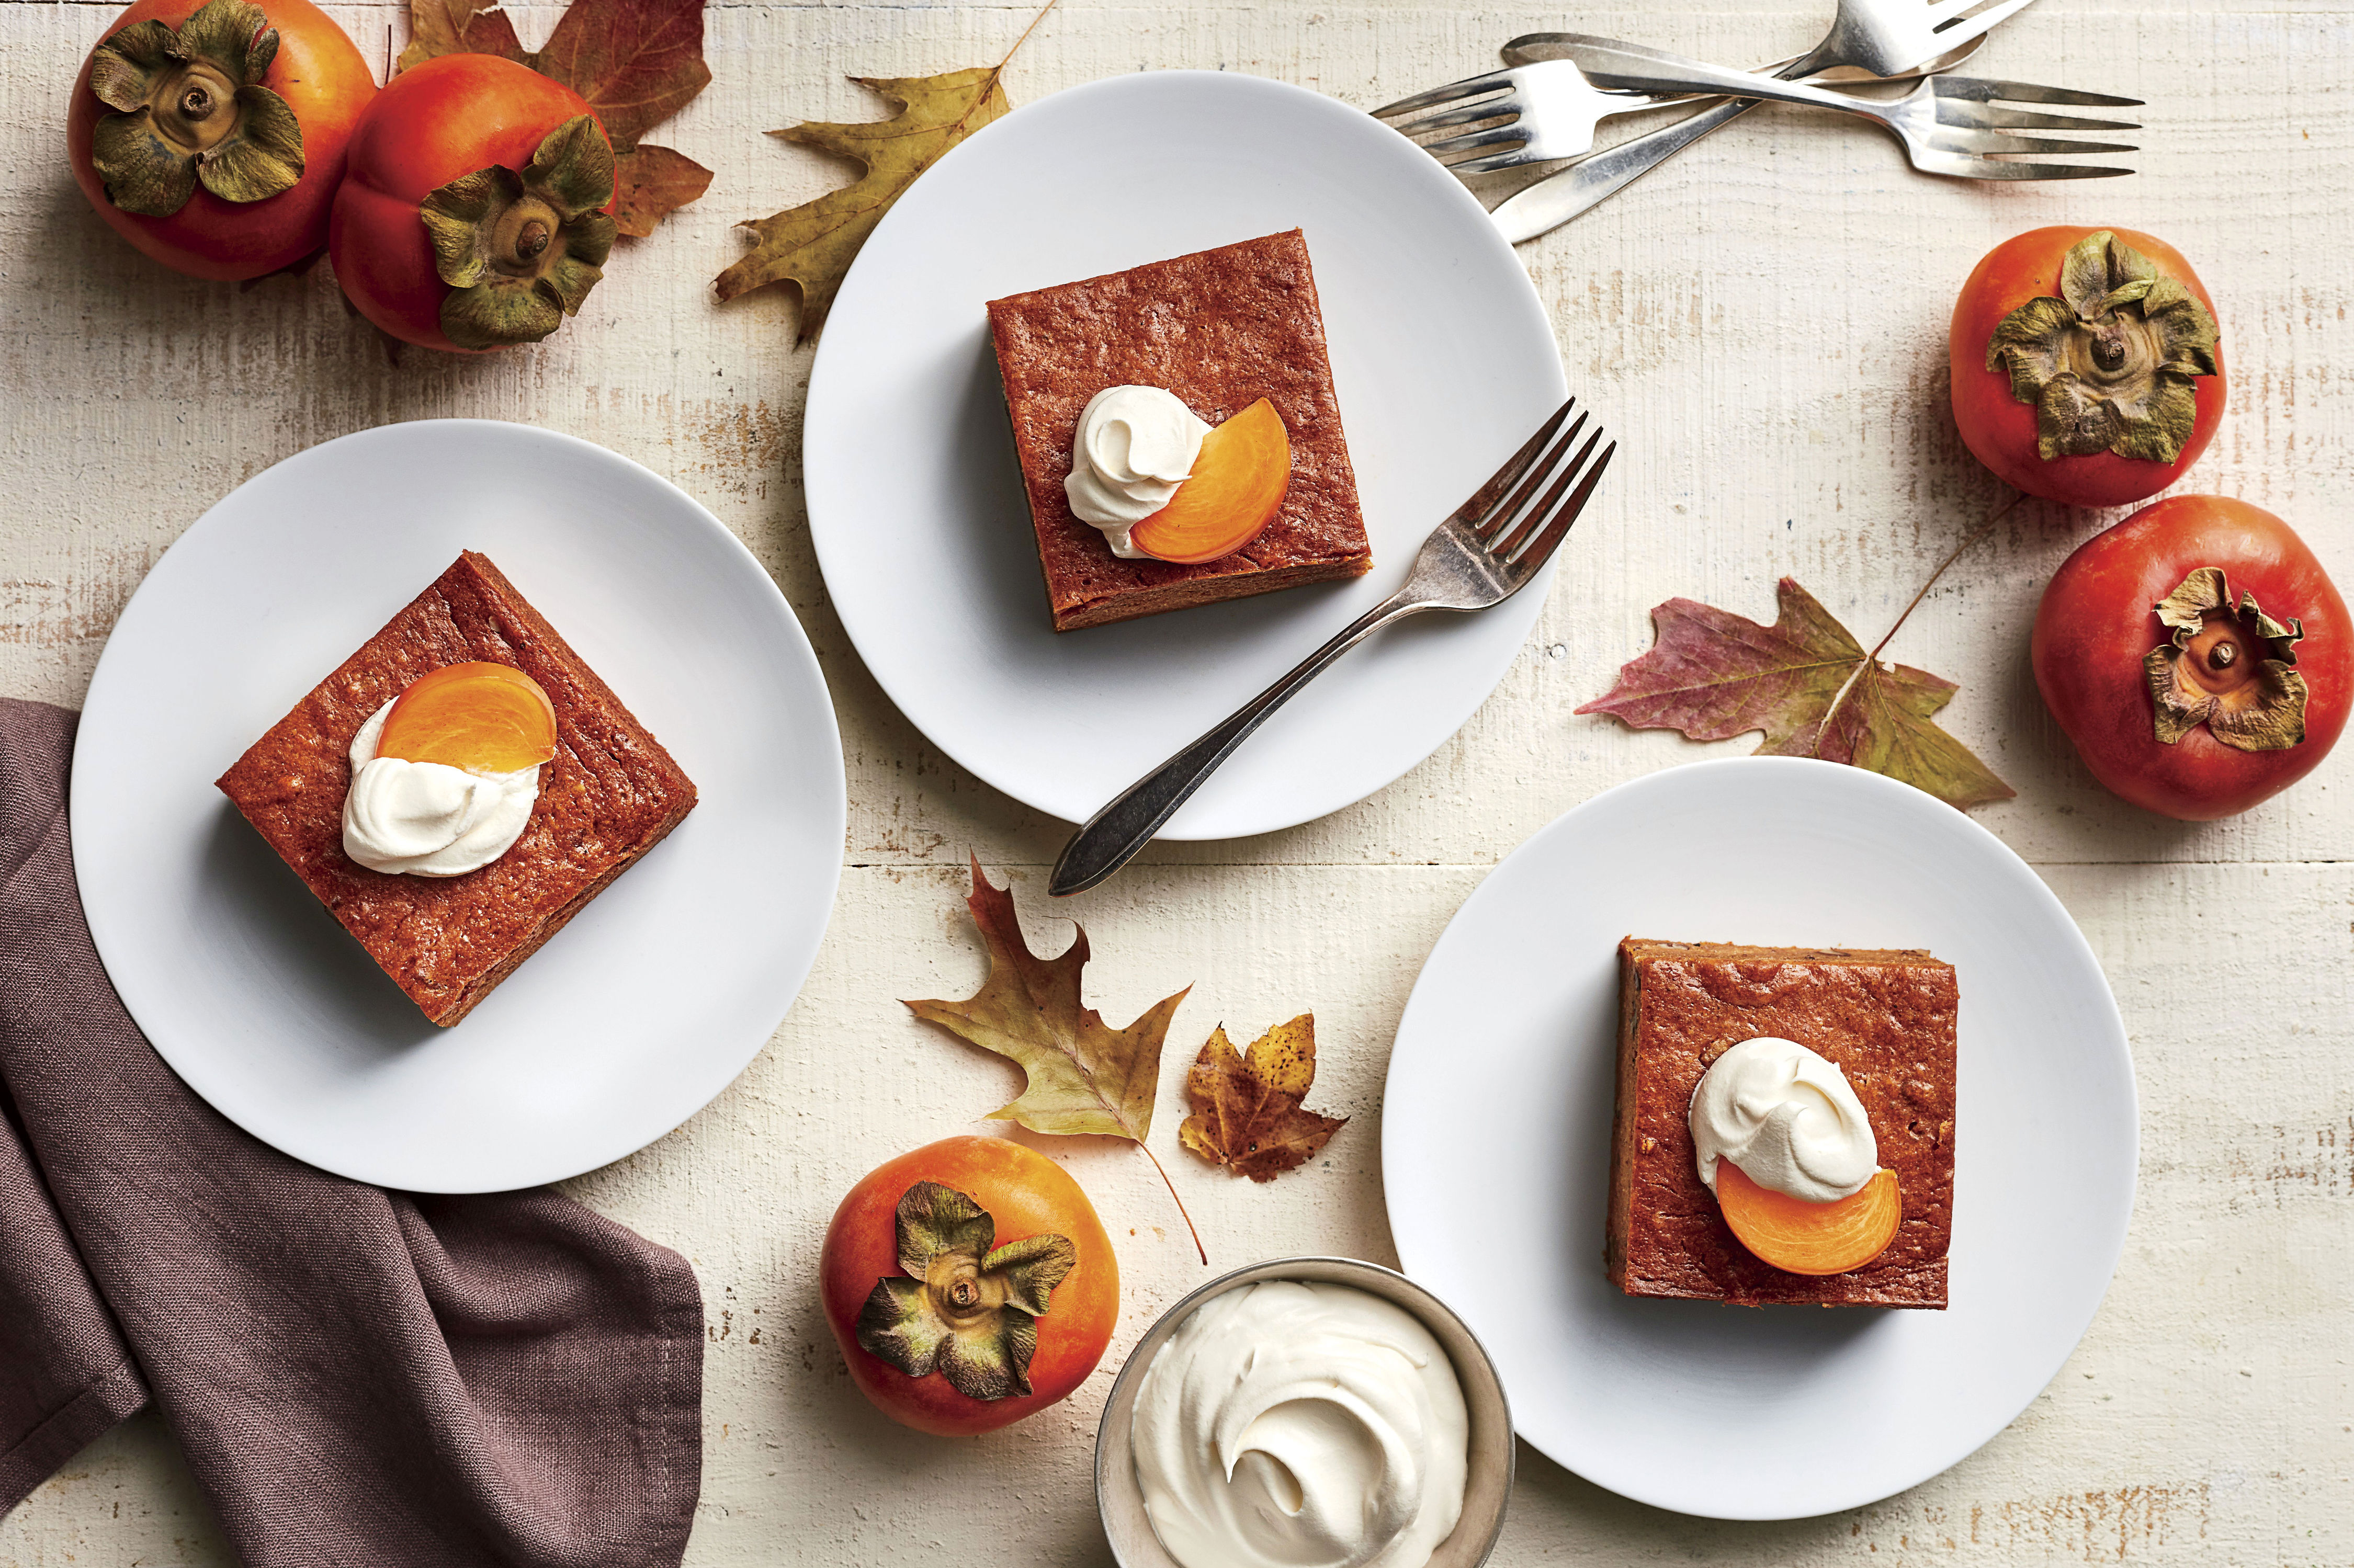 This Fall Dessert Always Takes Me Back to My Grandmother's Kitchen